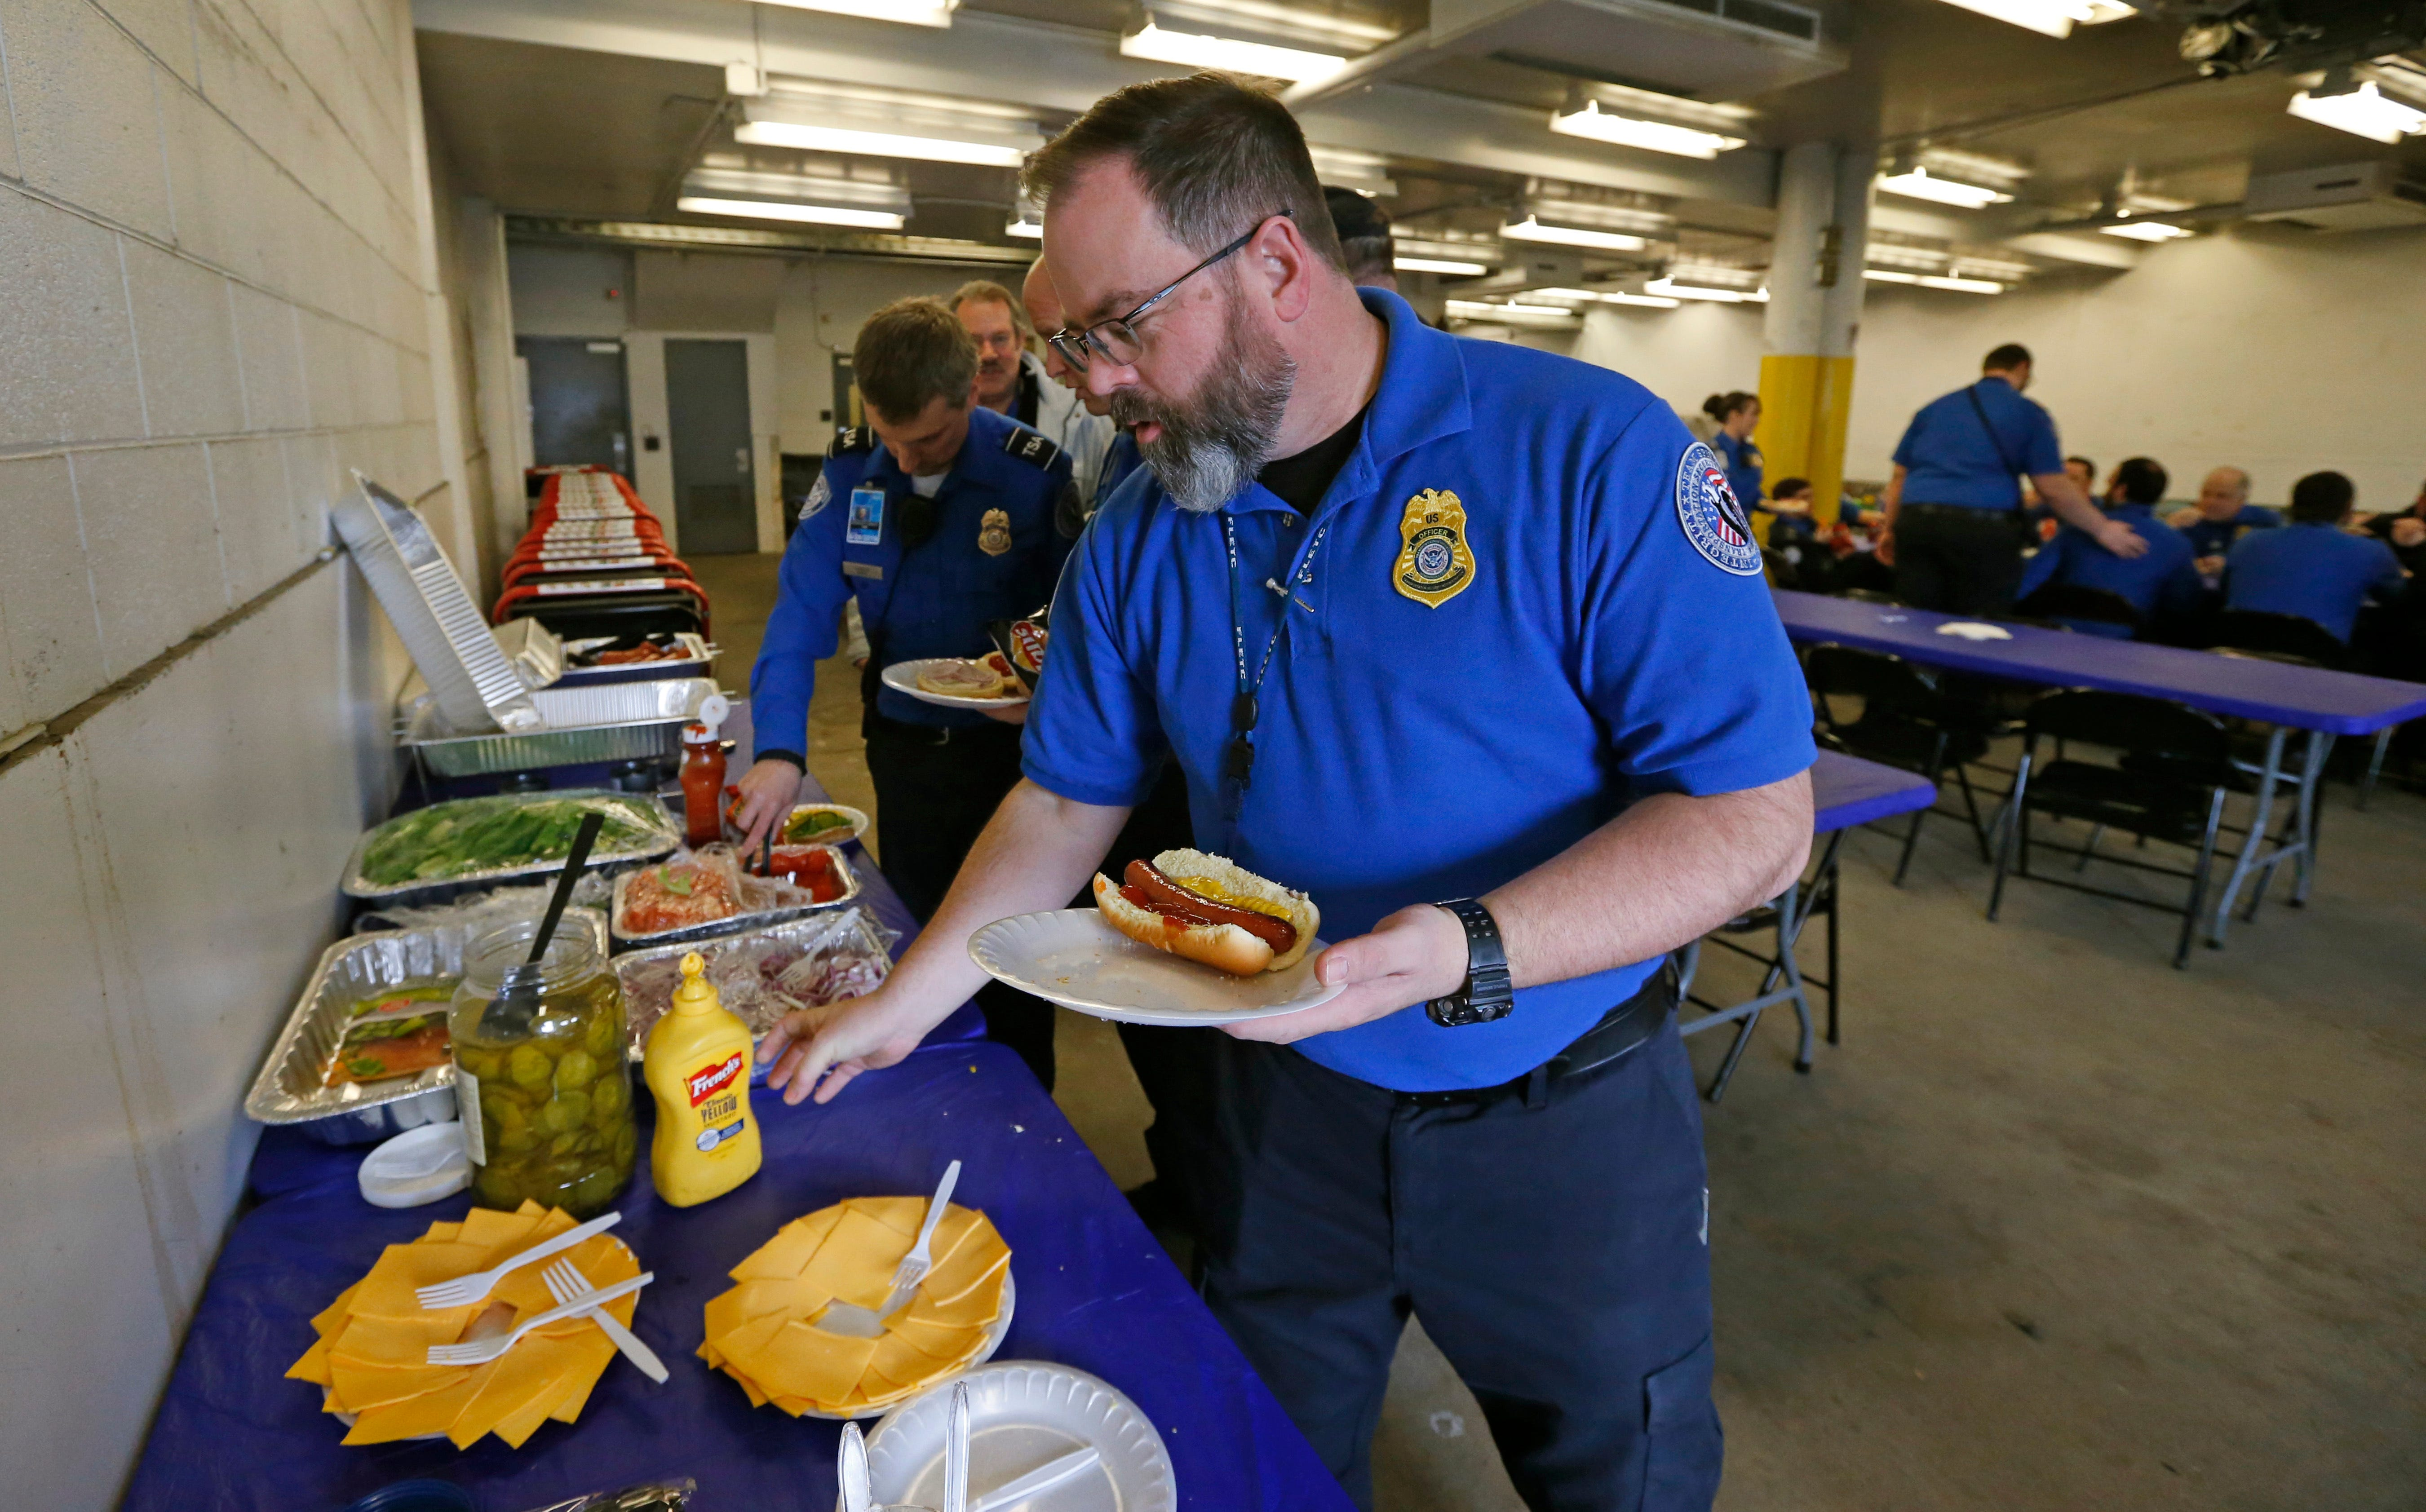 TSA employee Gary Vetterli prepares a hot dog during lunch at Salt Lake City International Airport on Wednesday in Salt Lake City. The government shutdown has generated an outpouring of generosity to TSA agents and other federal employees who are working without pay. In Salt Lake City, airport officials treated workers from the TSA, FAA and Customs and Border Protection to a free barbecue lunch as a gesture to keep their spirits up during a difficult time.